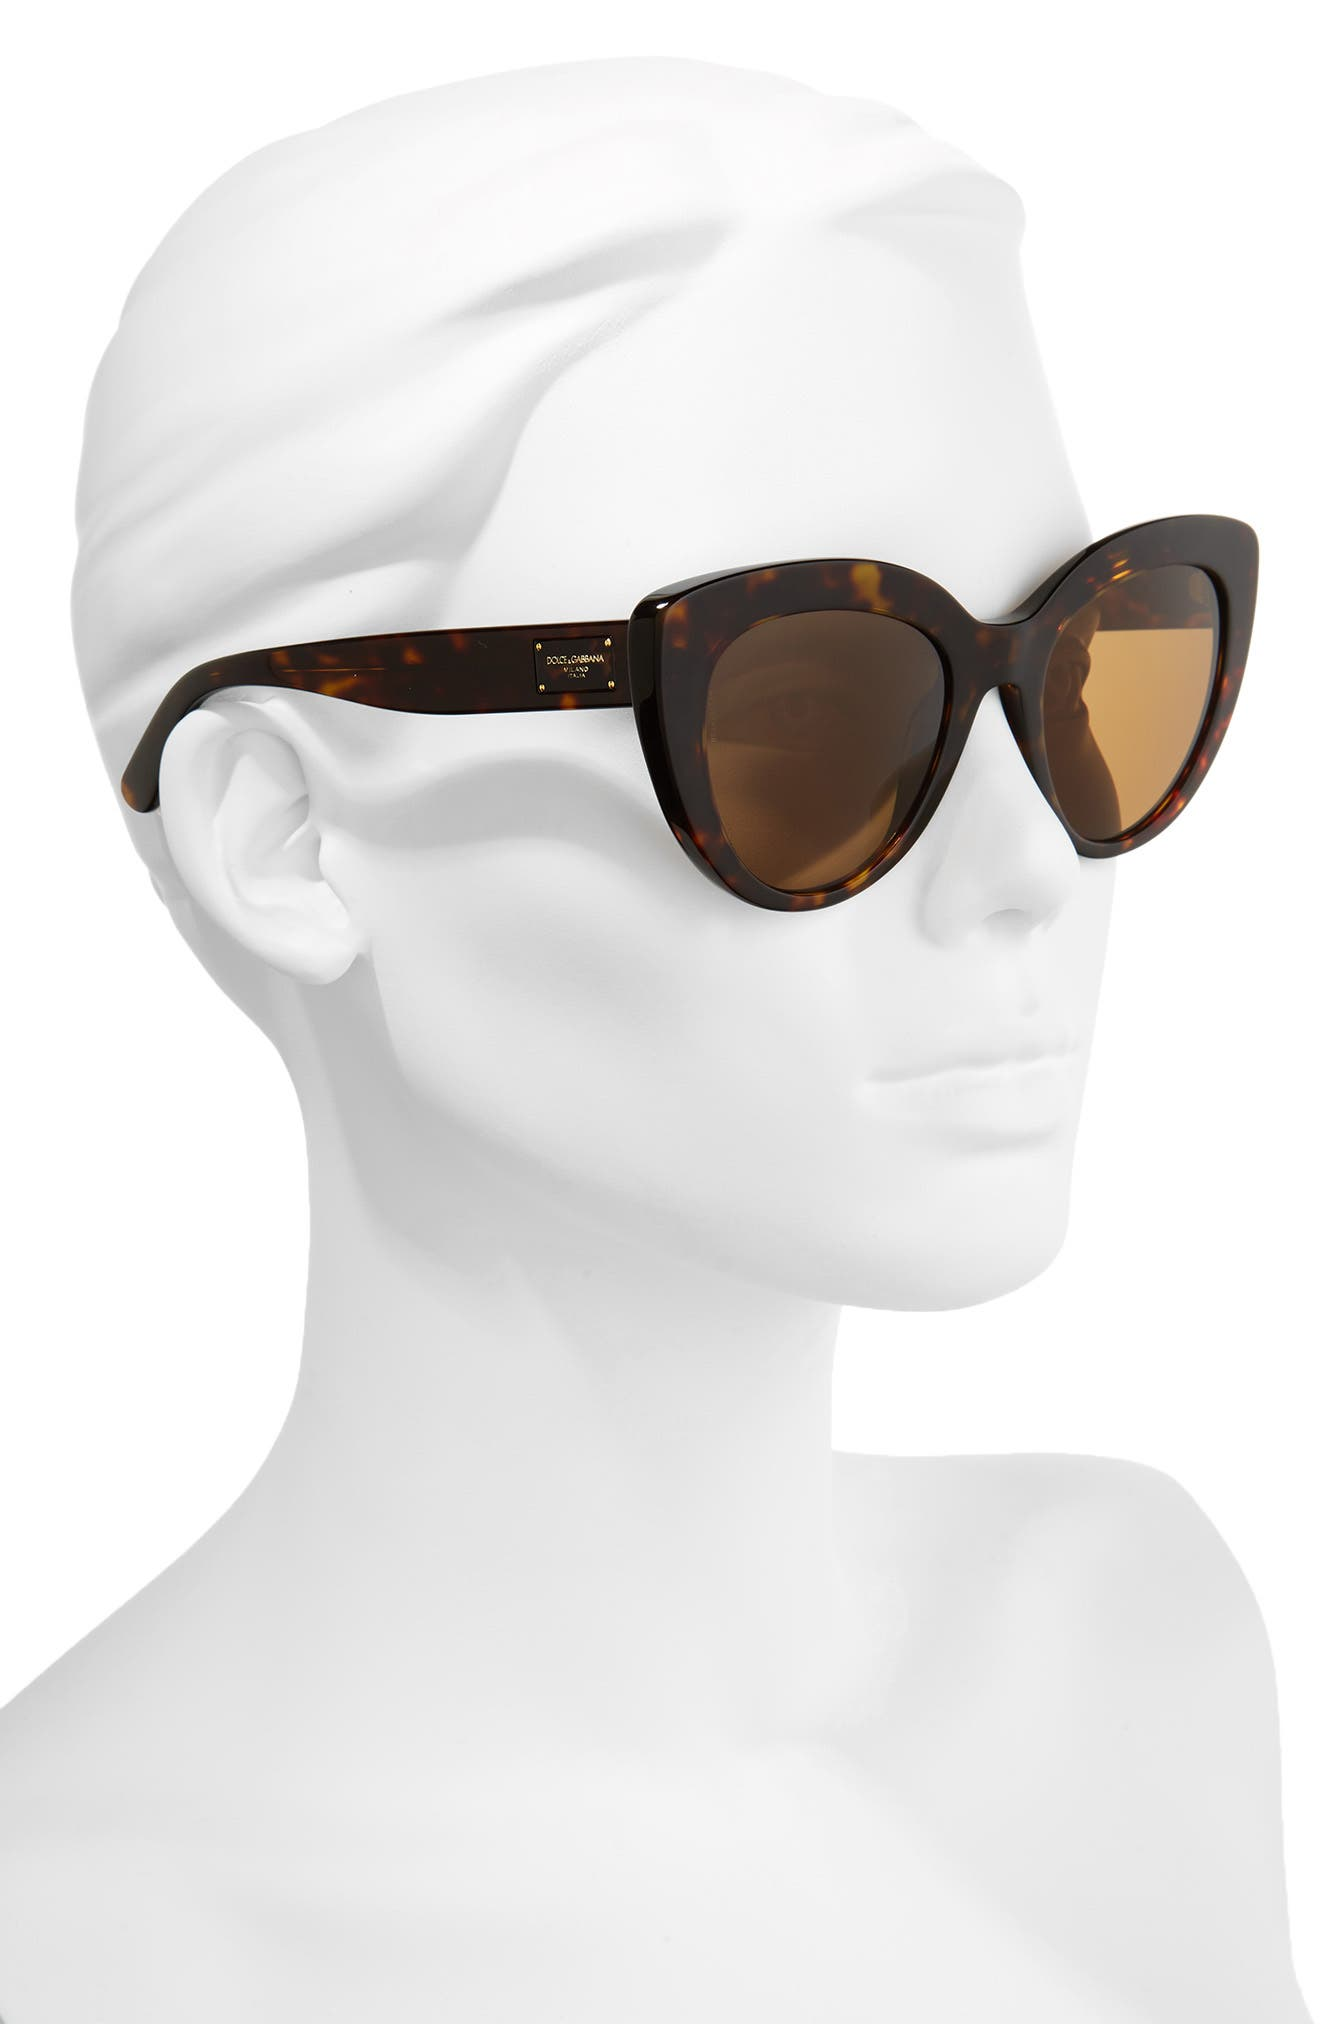 Dolce&Gabbana 53mm Polarized Cat Eye Sunglasses,                             Alternate thumbnail 2, color,                             Brown/ Havana